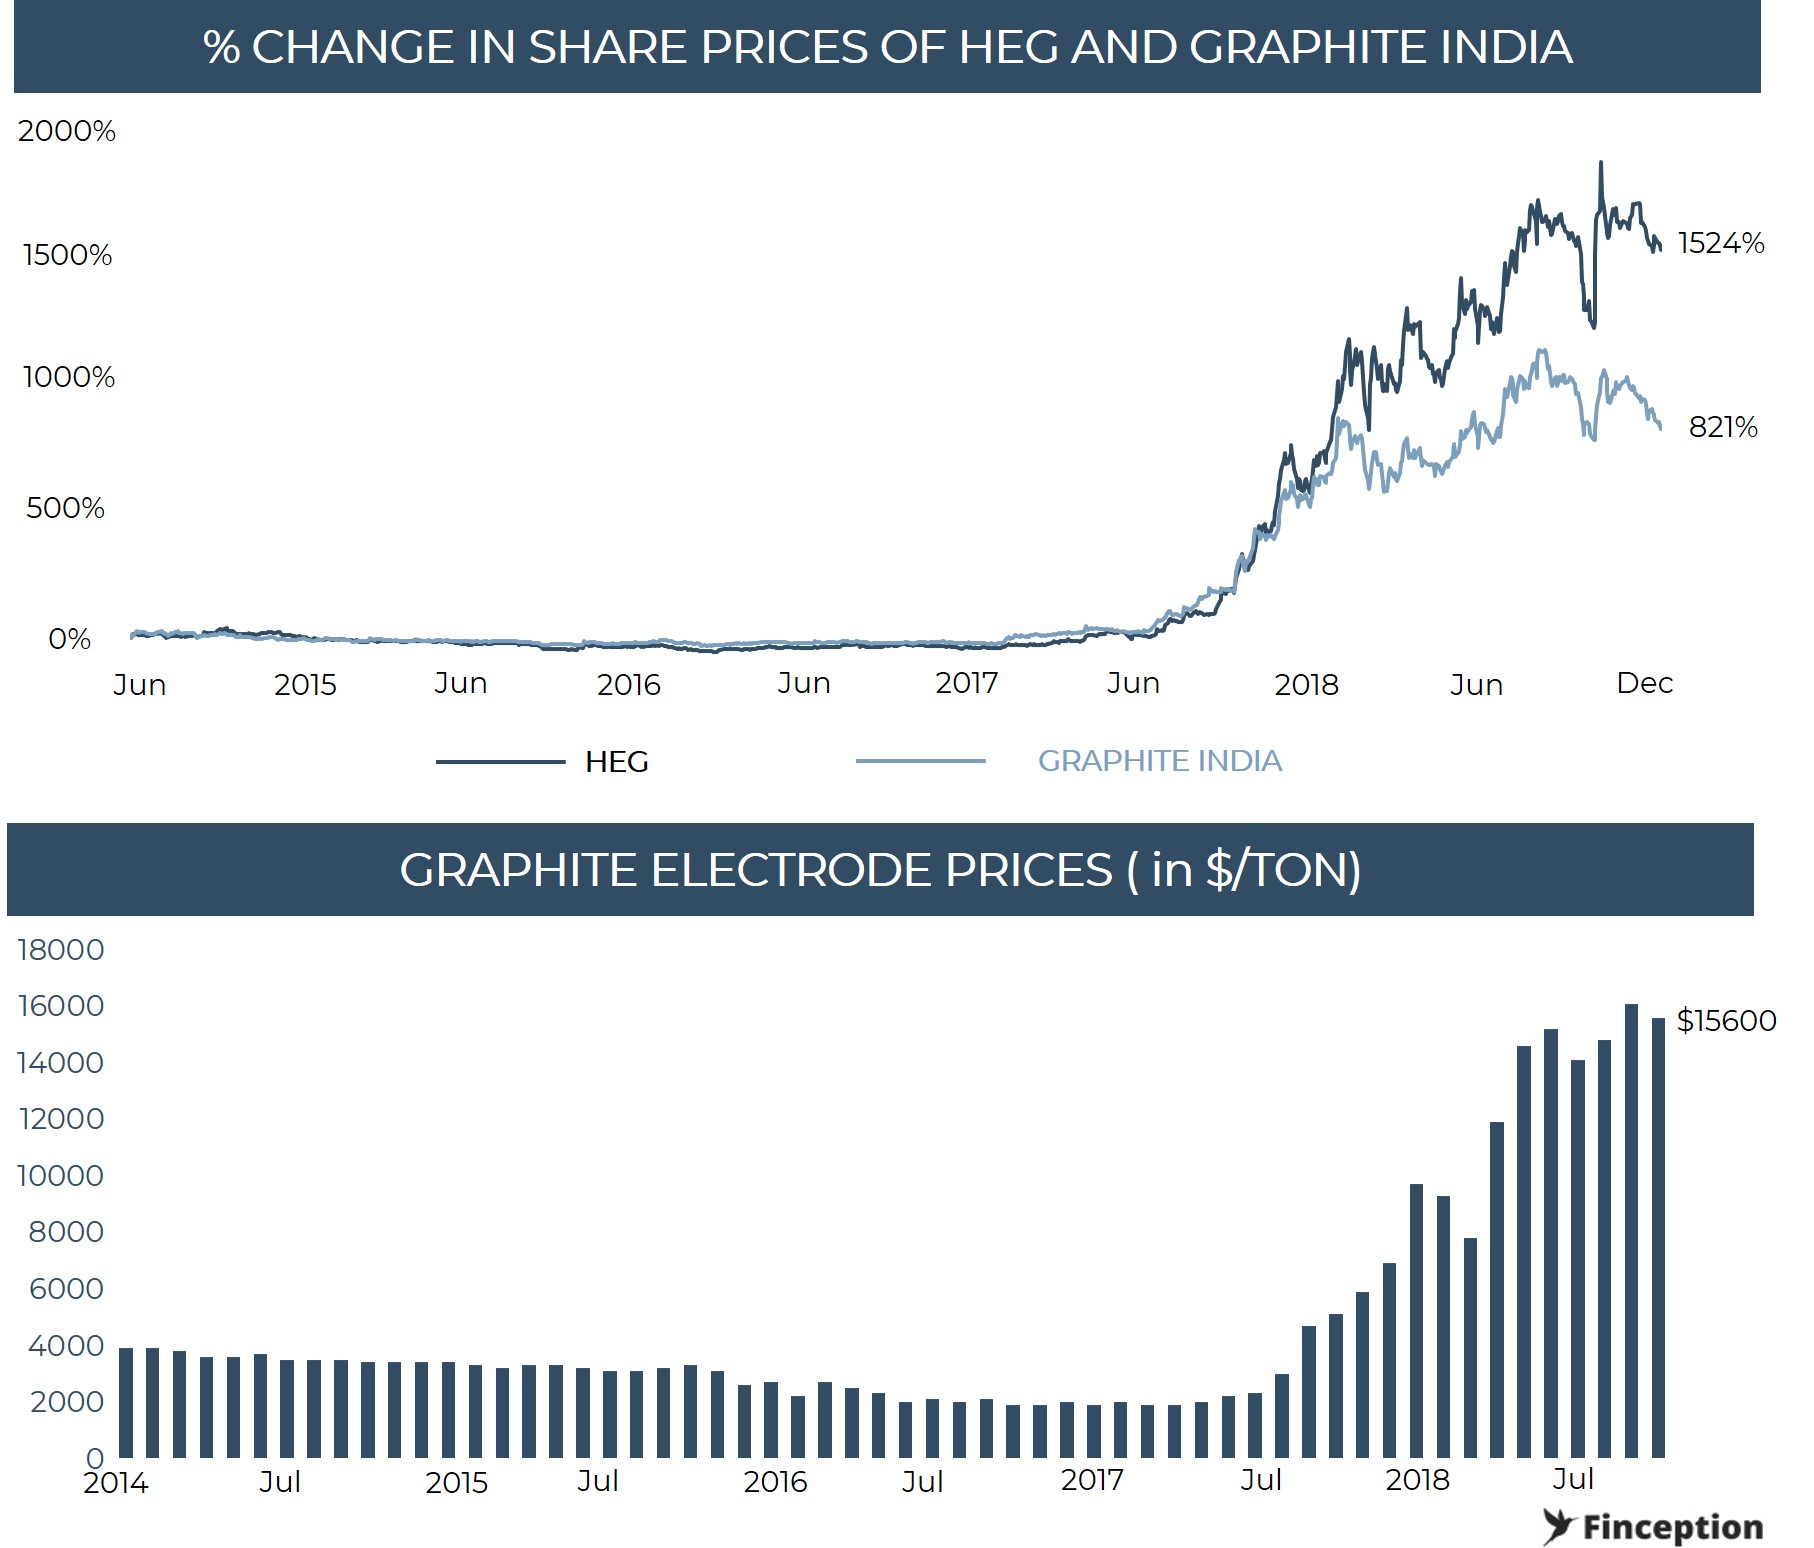 IShare price of HEG and Graphite India soared with graphite Electrode prices skyrocketing